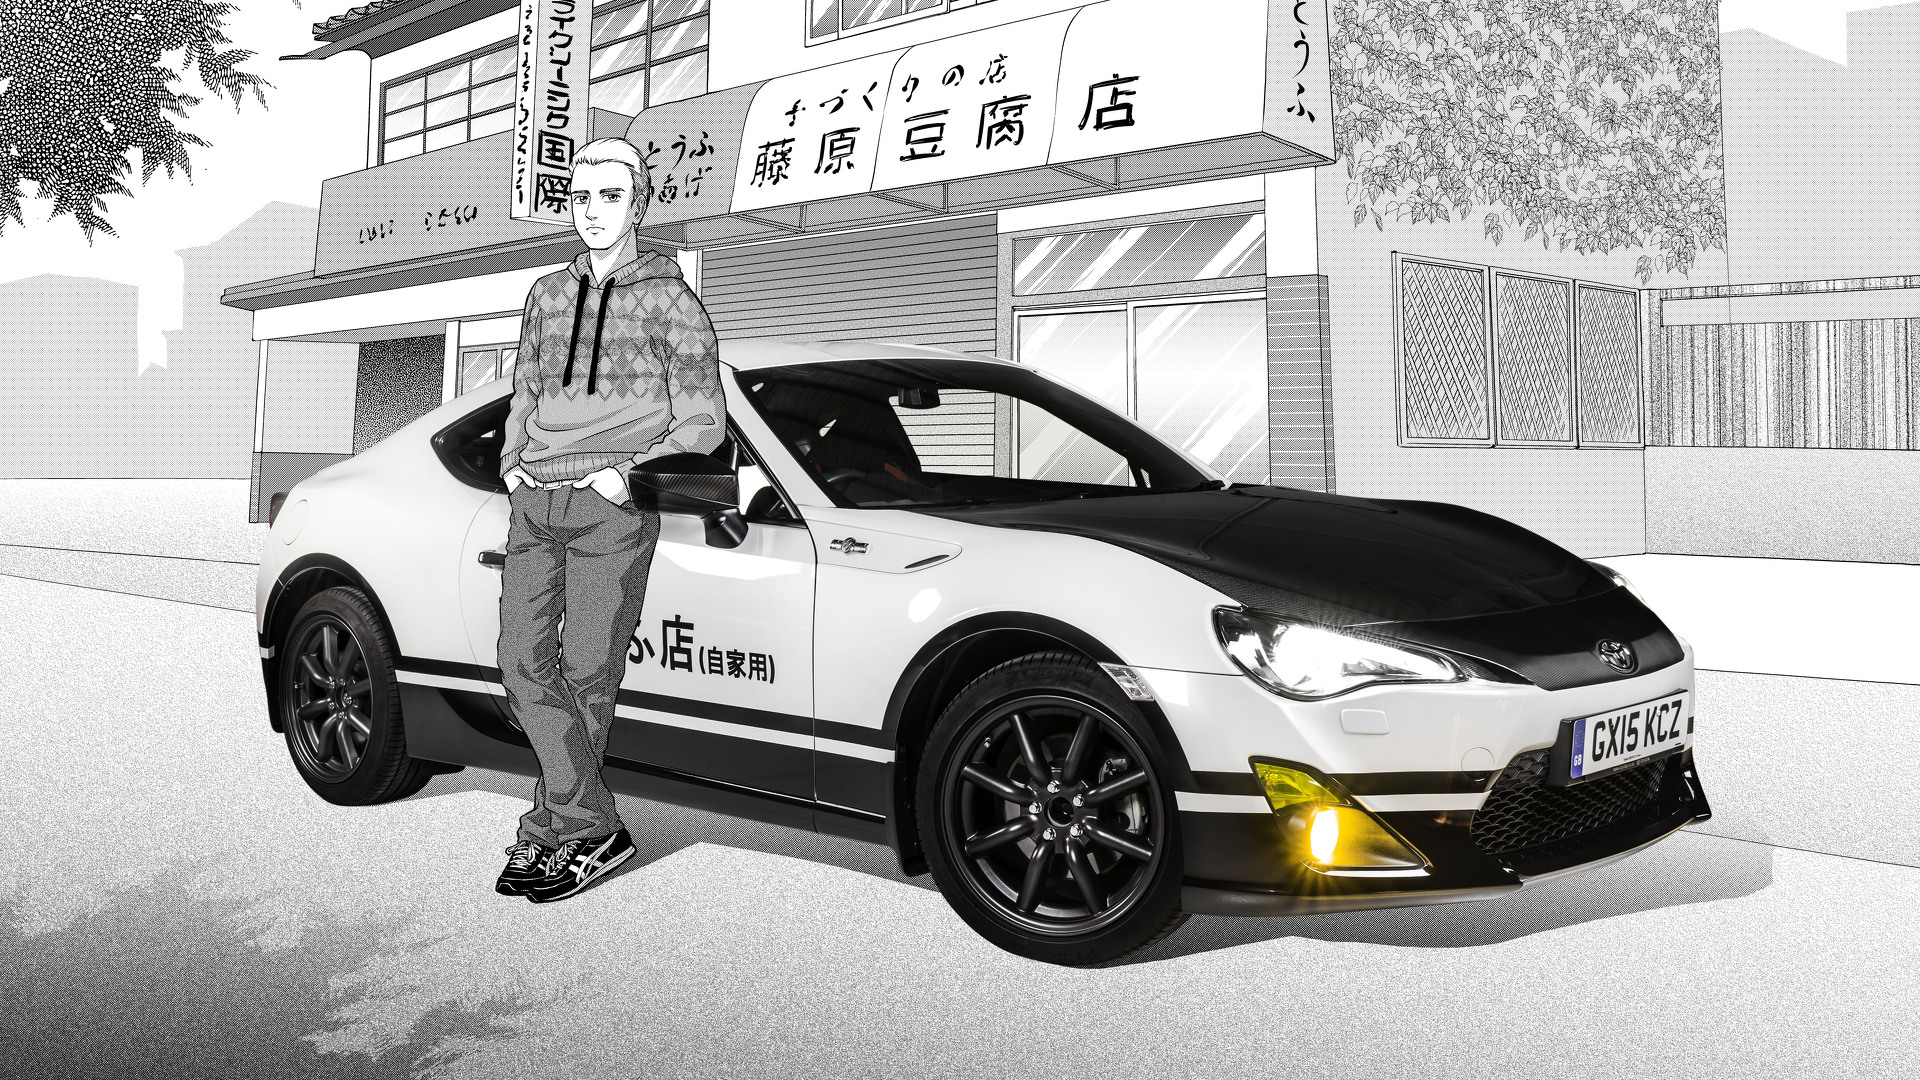 Toyota GT86 Initial D concept pays homage to Japanese manga series